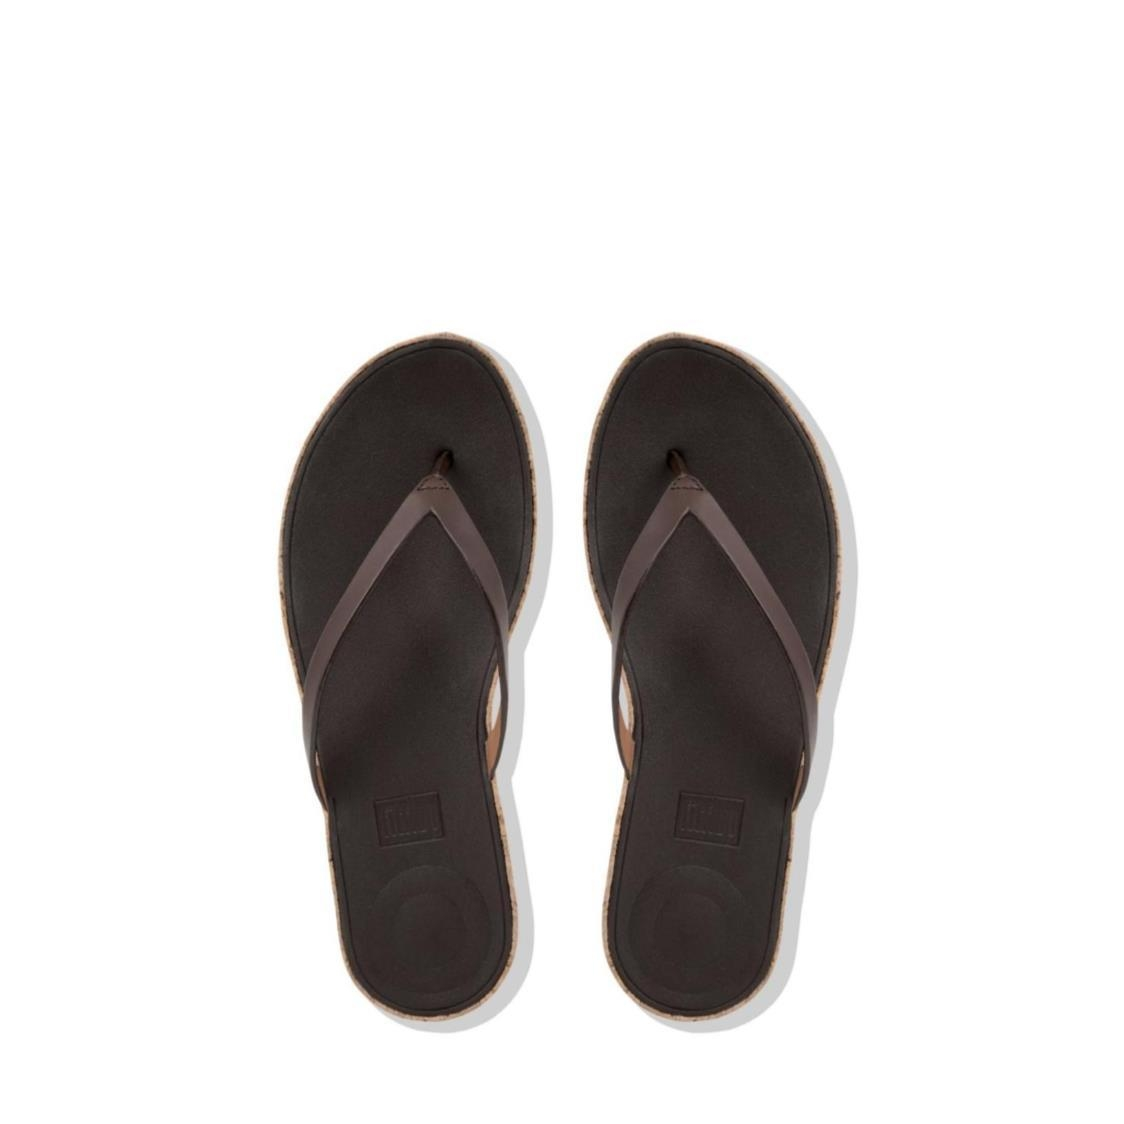 Linny Leather Toe-Thong Sandals Espresso